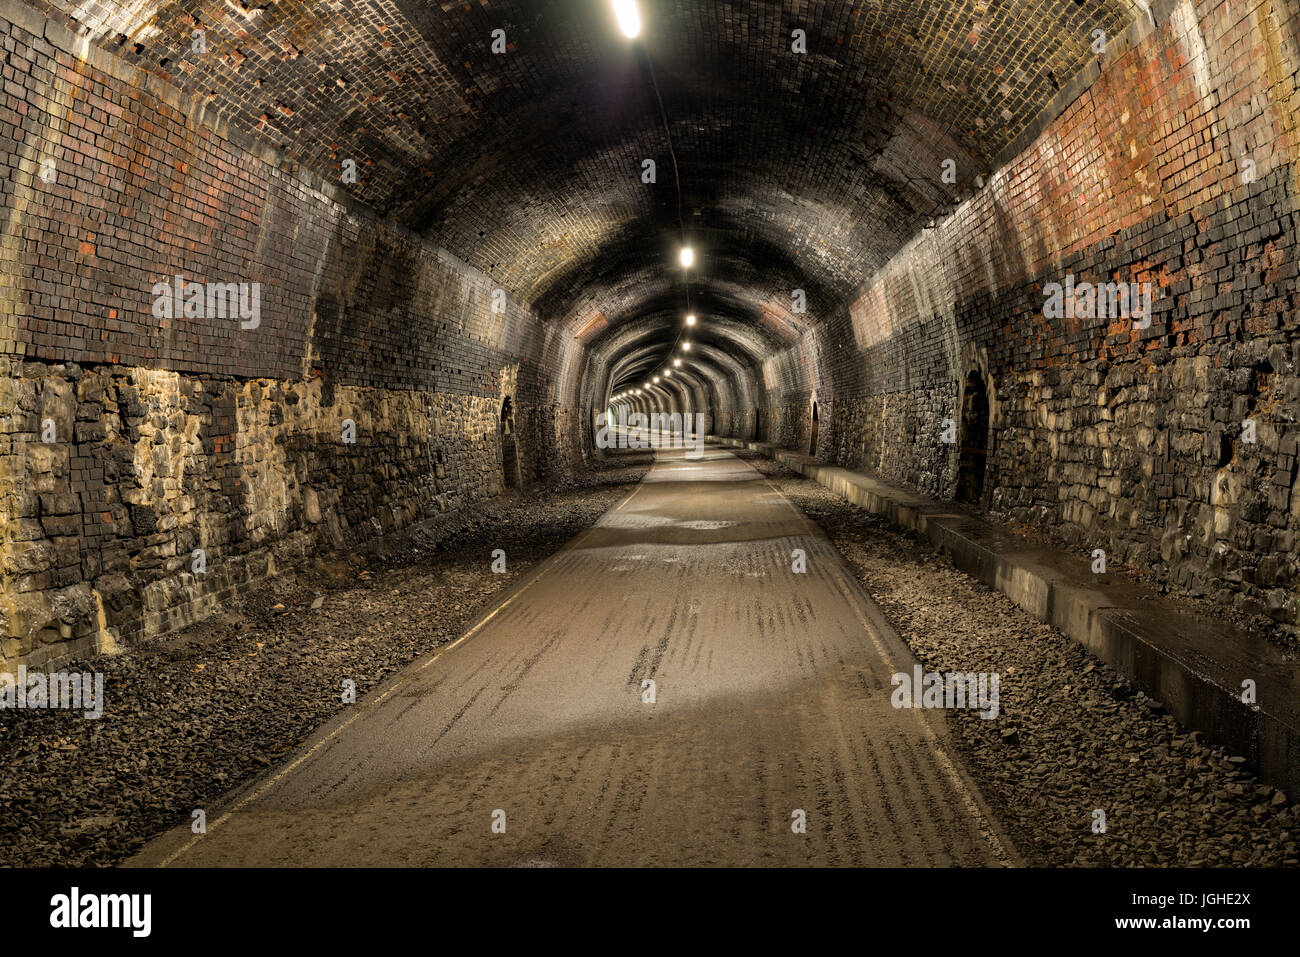 Entrance Of The Railway Tunnel Stock Photos Amp Entrance Of